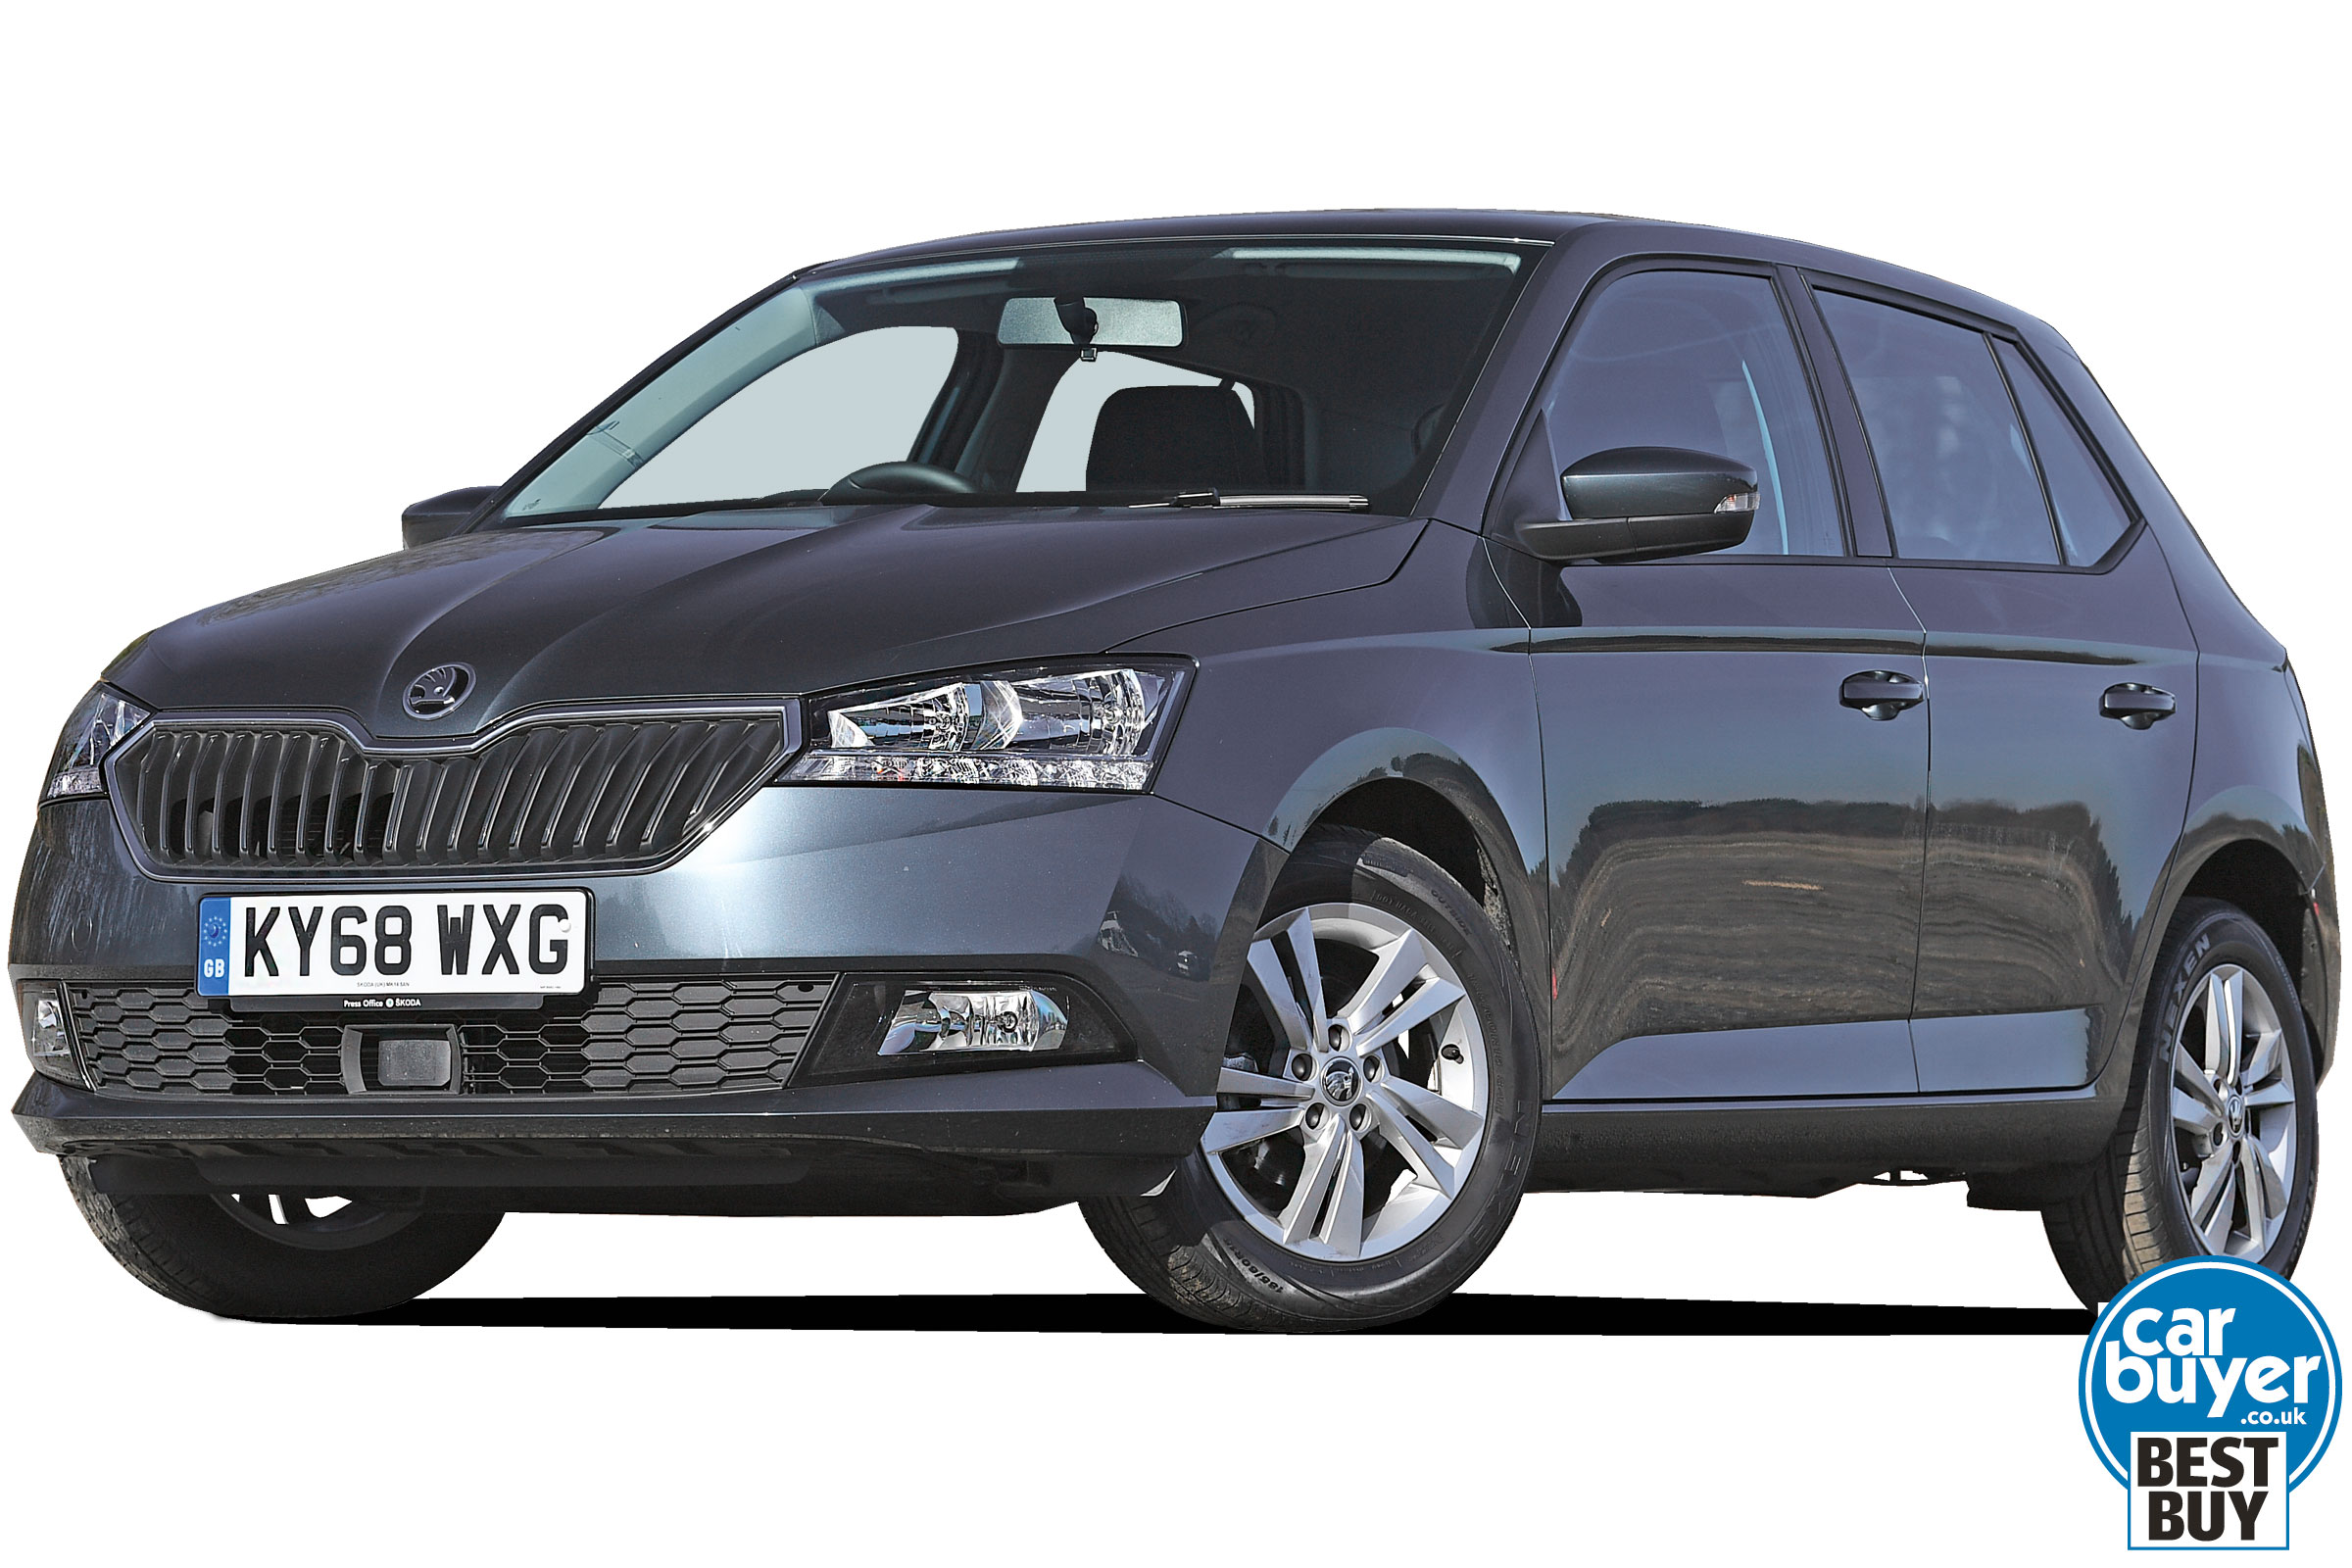 Skoda Fabia Hatchback Engines Drive Performance 2020 Review Carbuyer